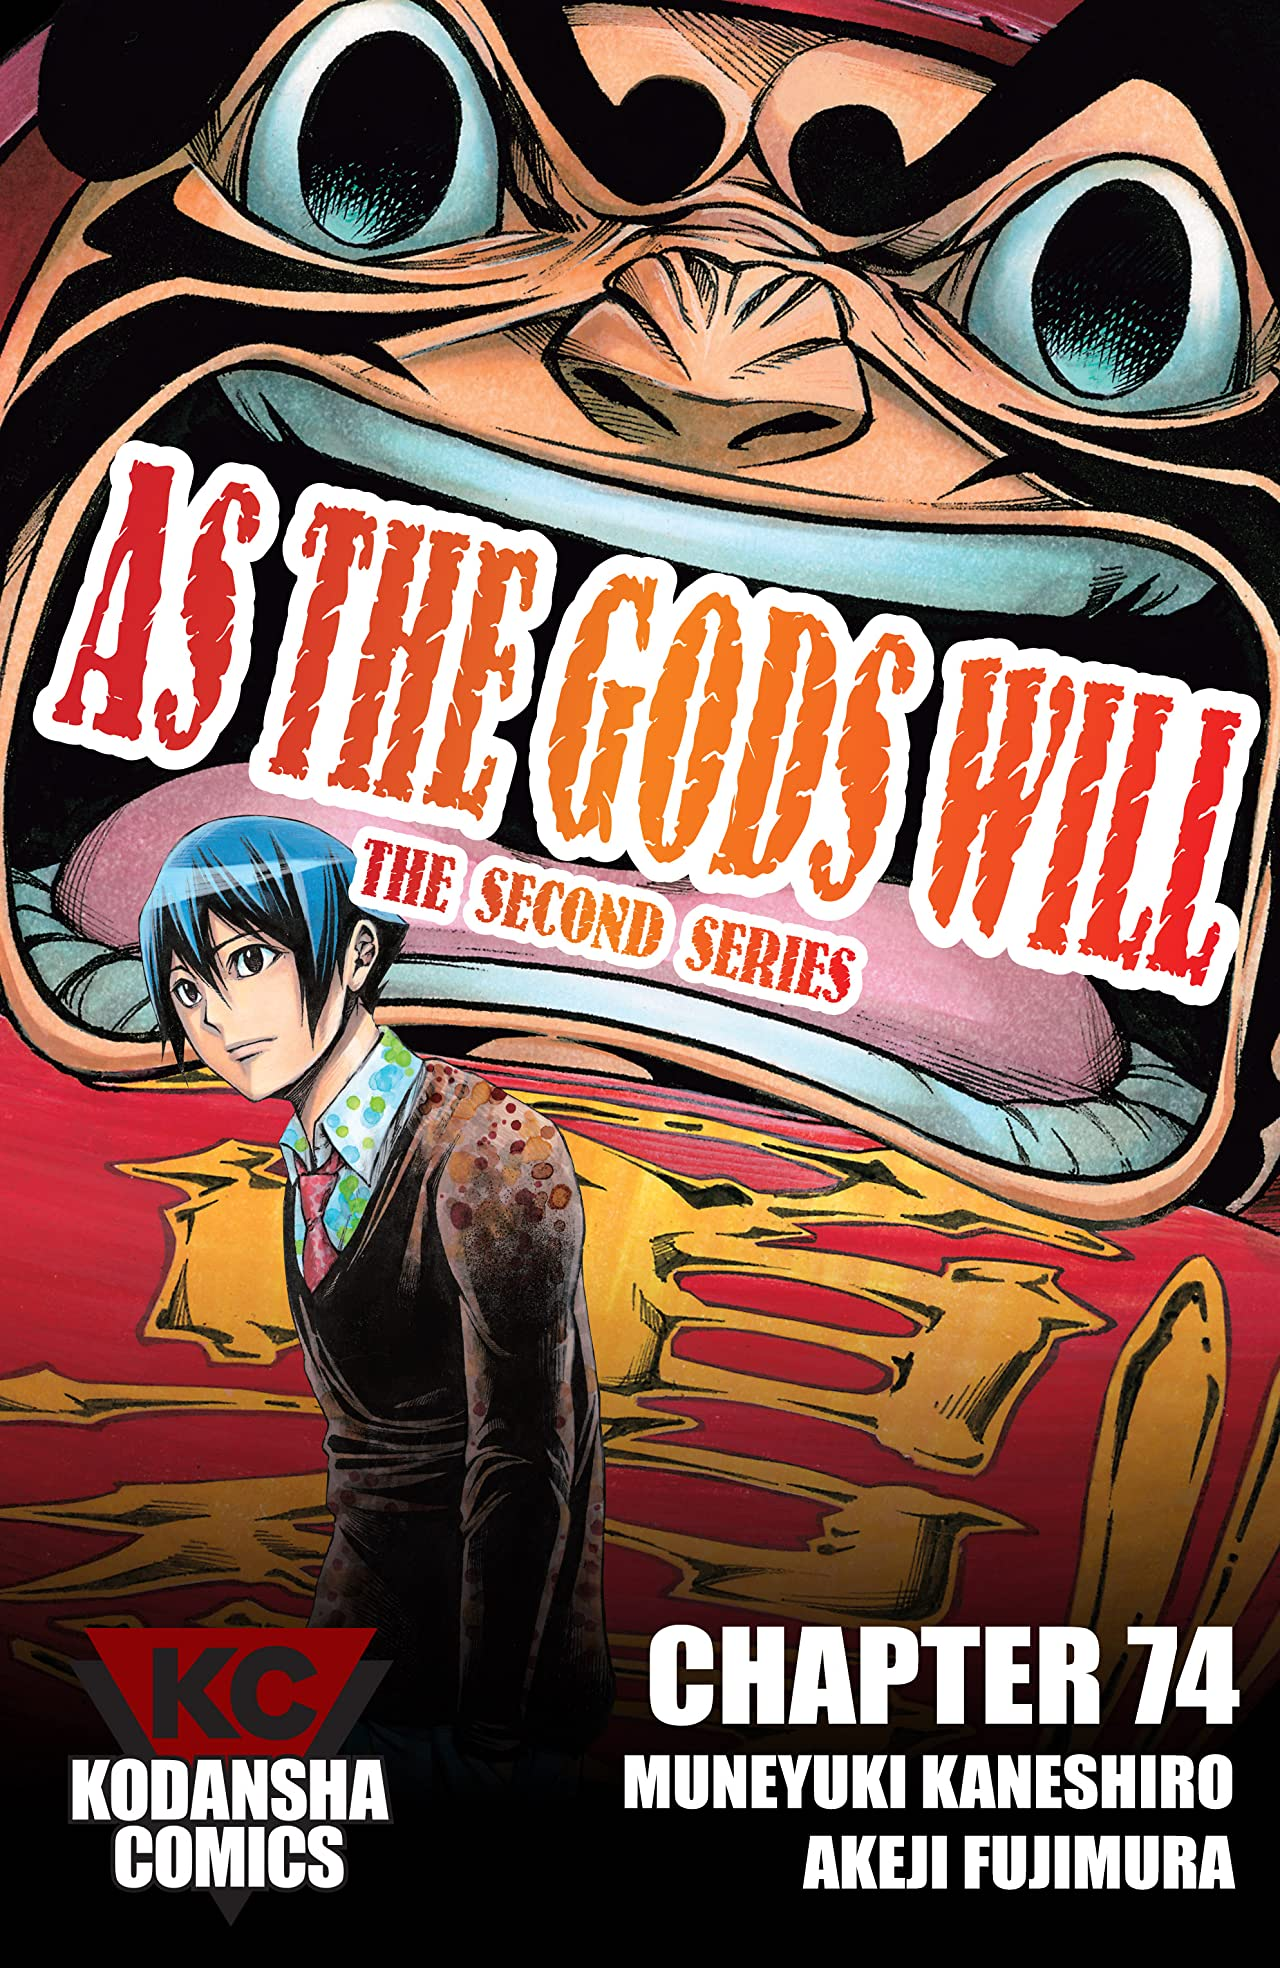 As The Gods Will: The Second Series #74